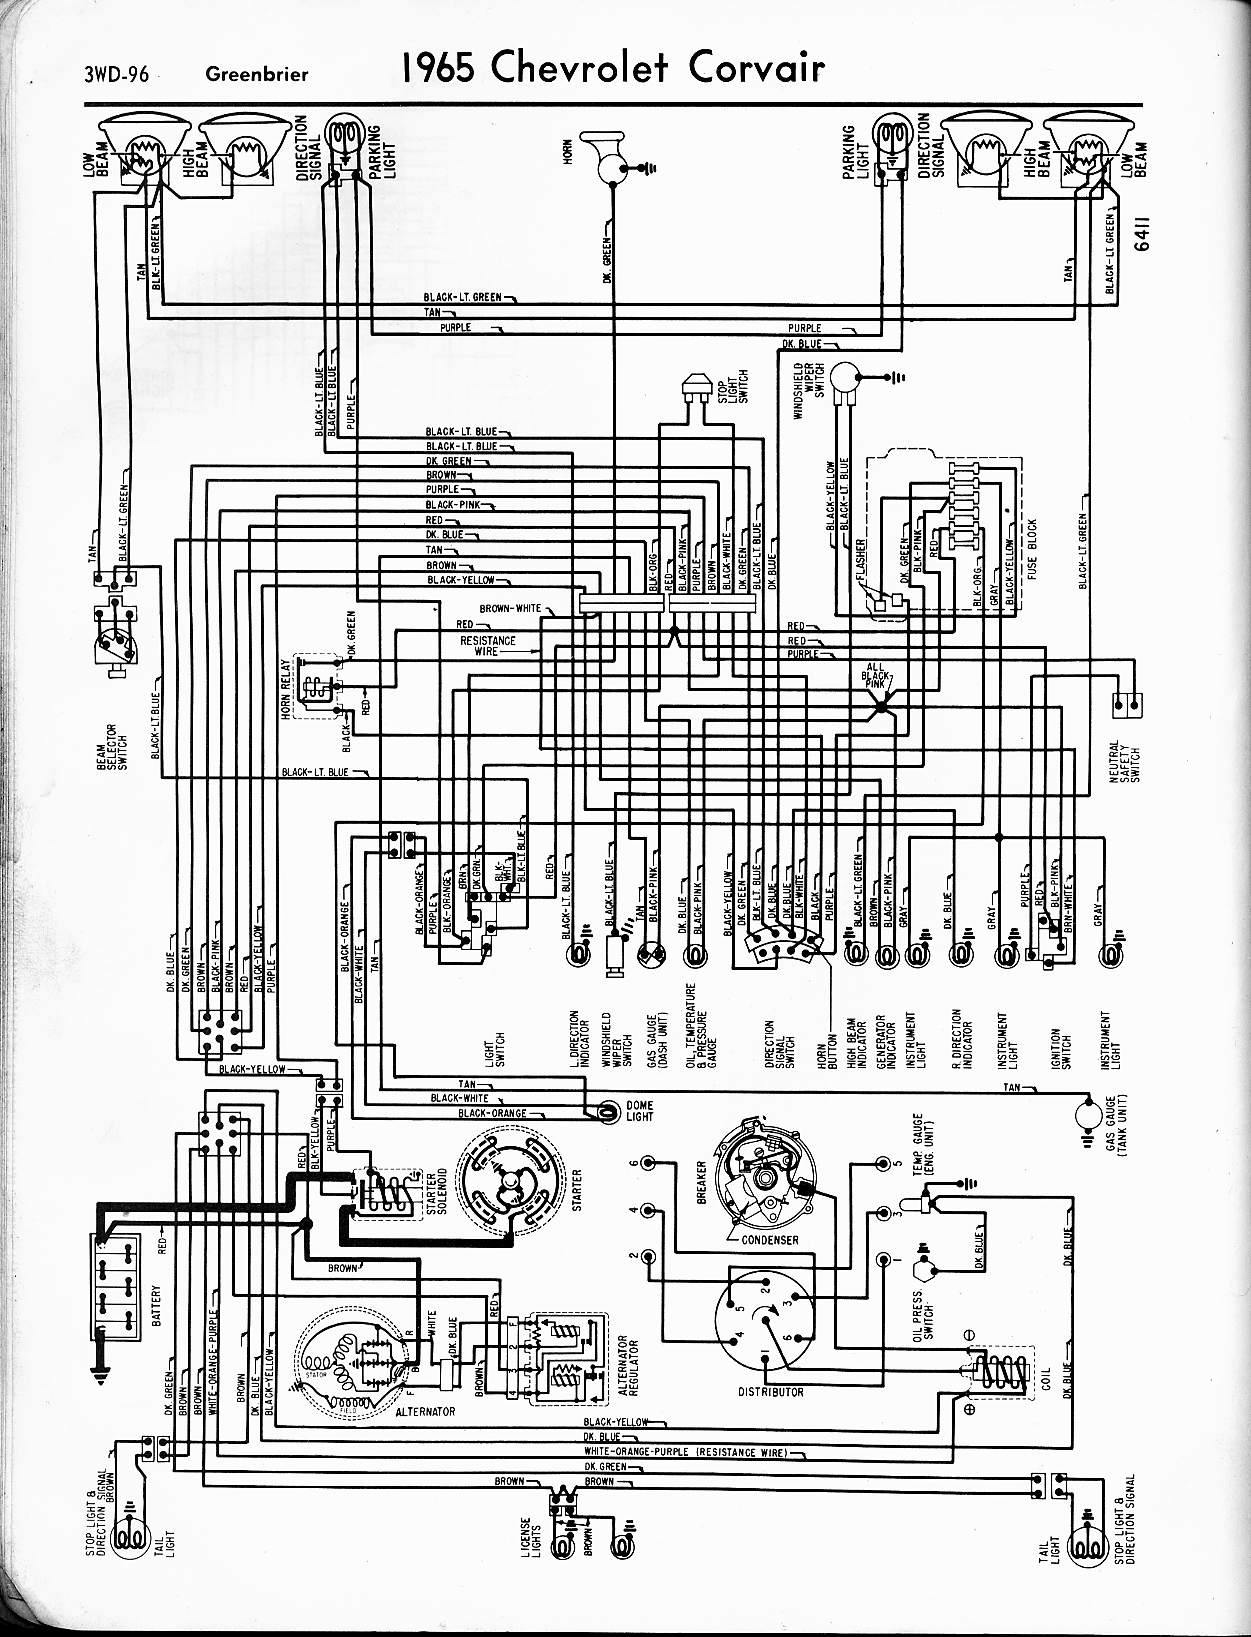 MWireChev65_3WD 096 57 65 chevy wiring diagrams 1965 corvair wiring diagram at nearapp.co